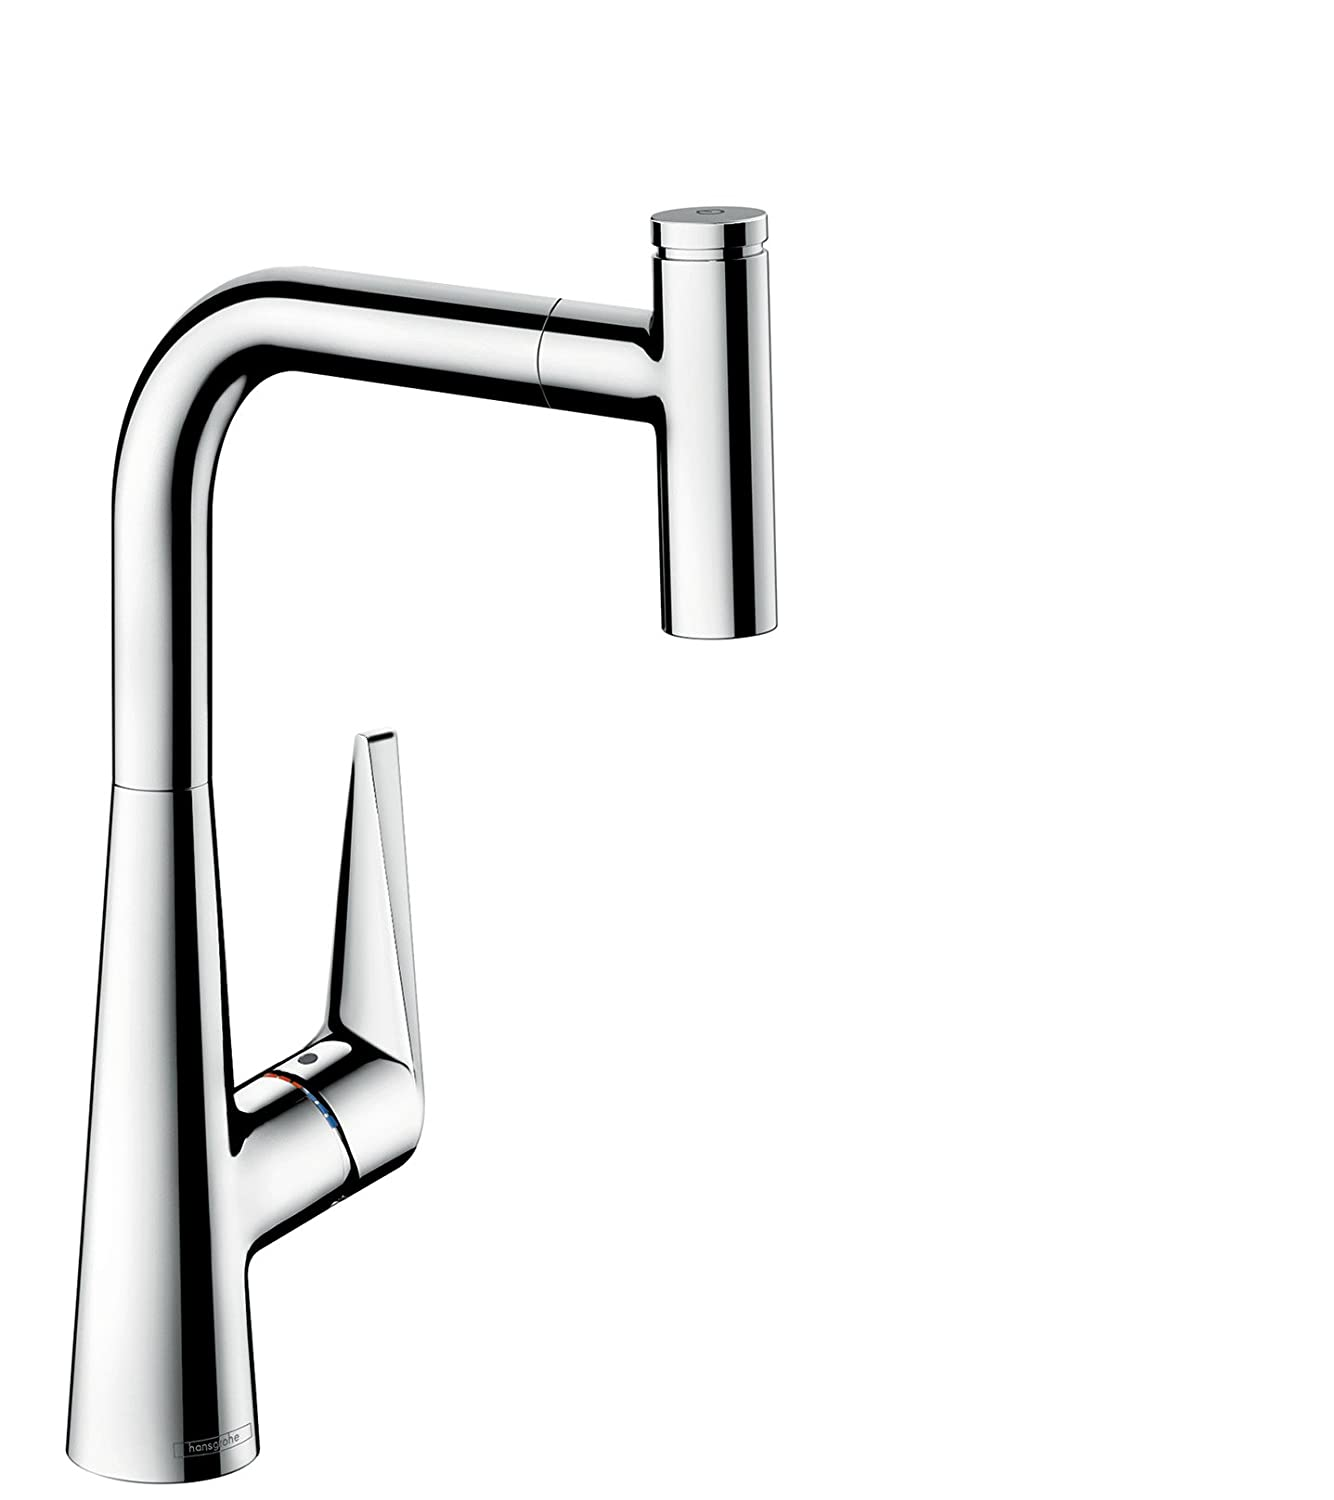 Amazon.com: Hansgrohe Talis Select S 300 With Pull-Out Spout Chrome ...